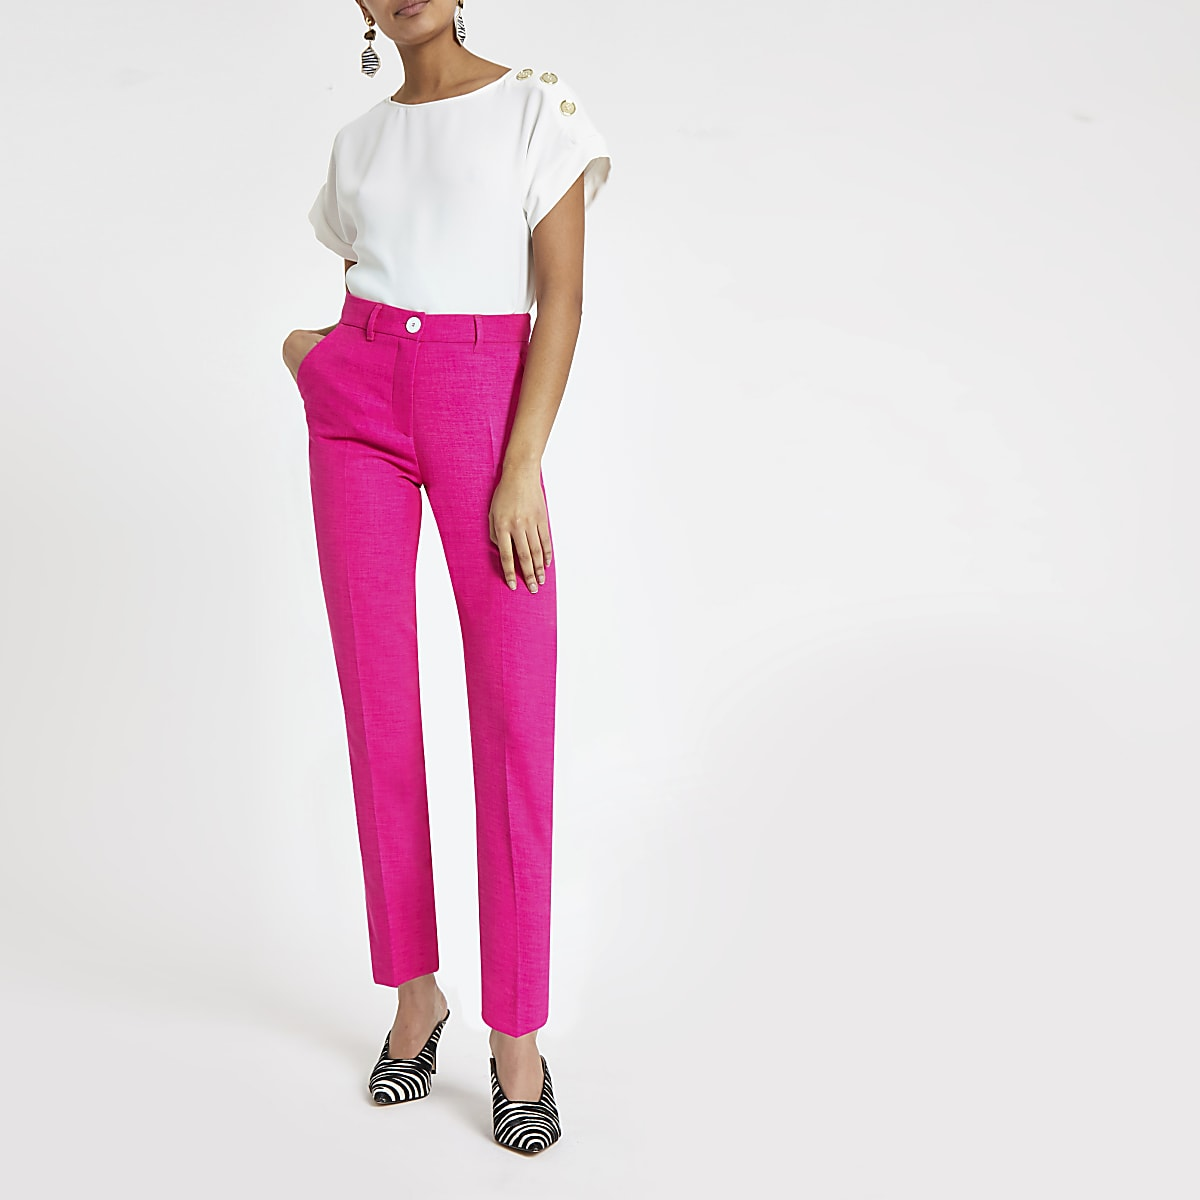 Pink cigarette pants